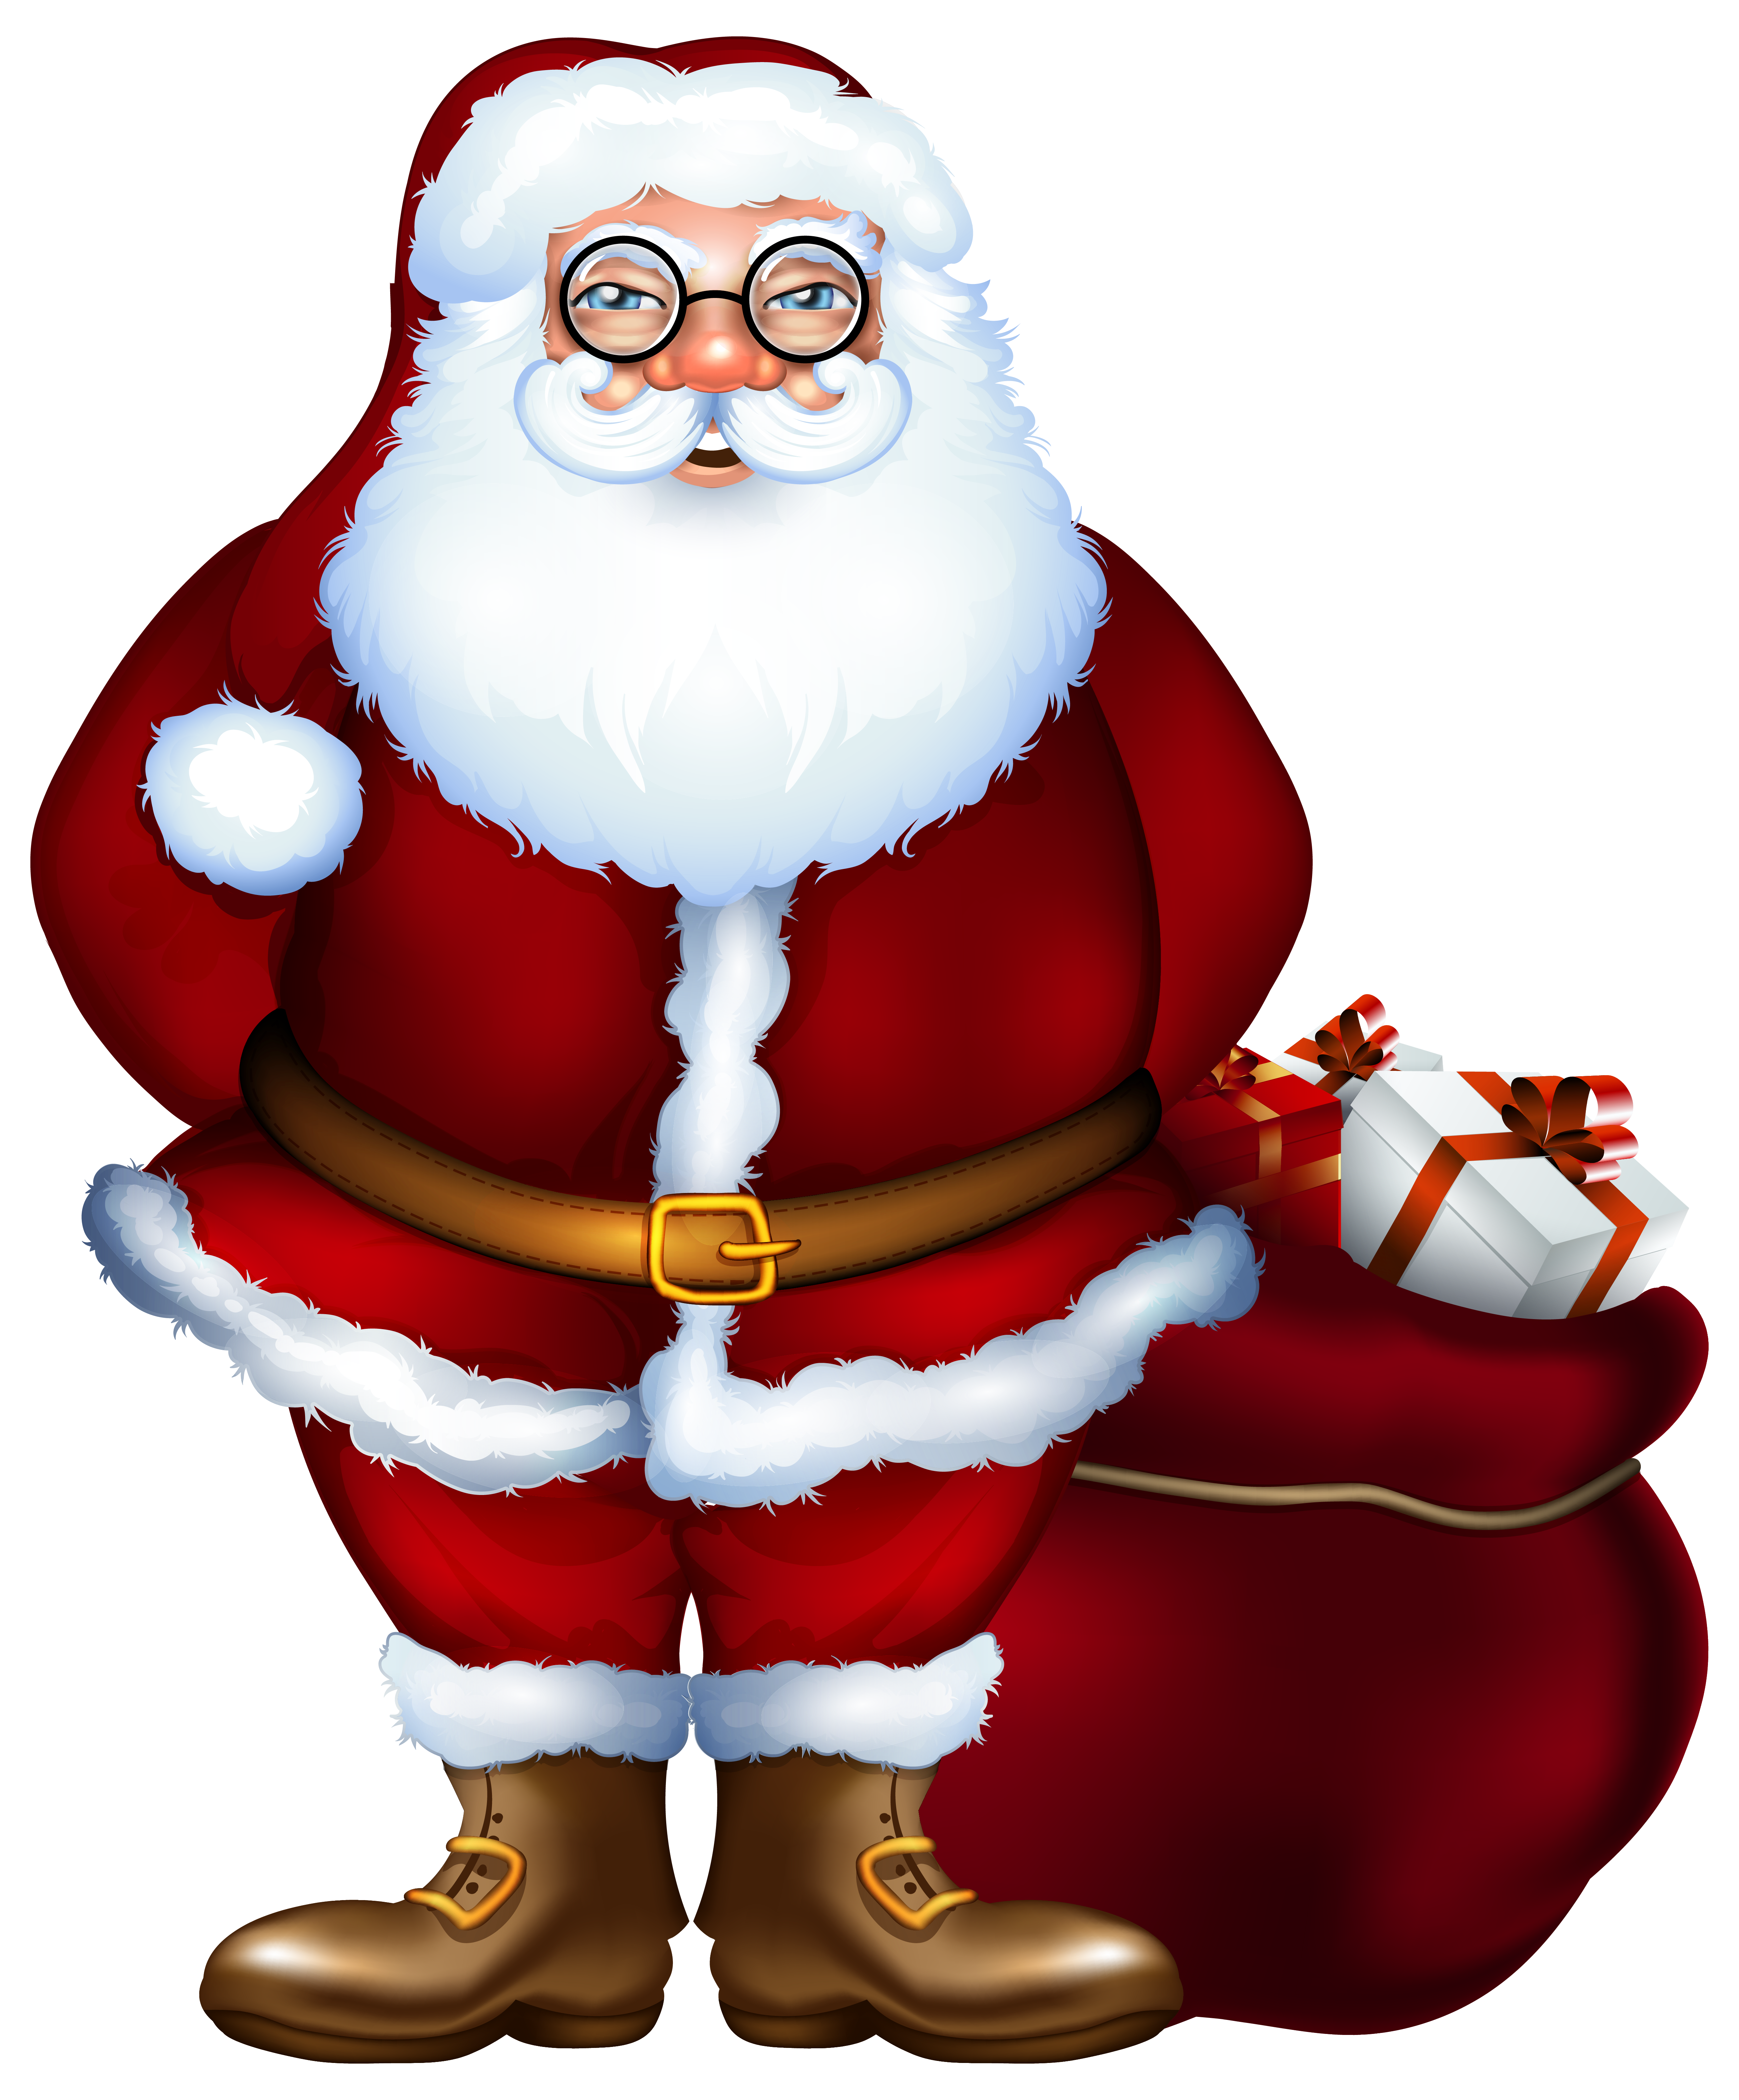 Claus clipart png. Santa image gallery yopriceville